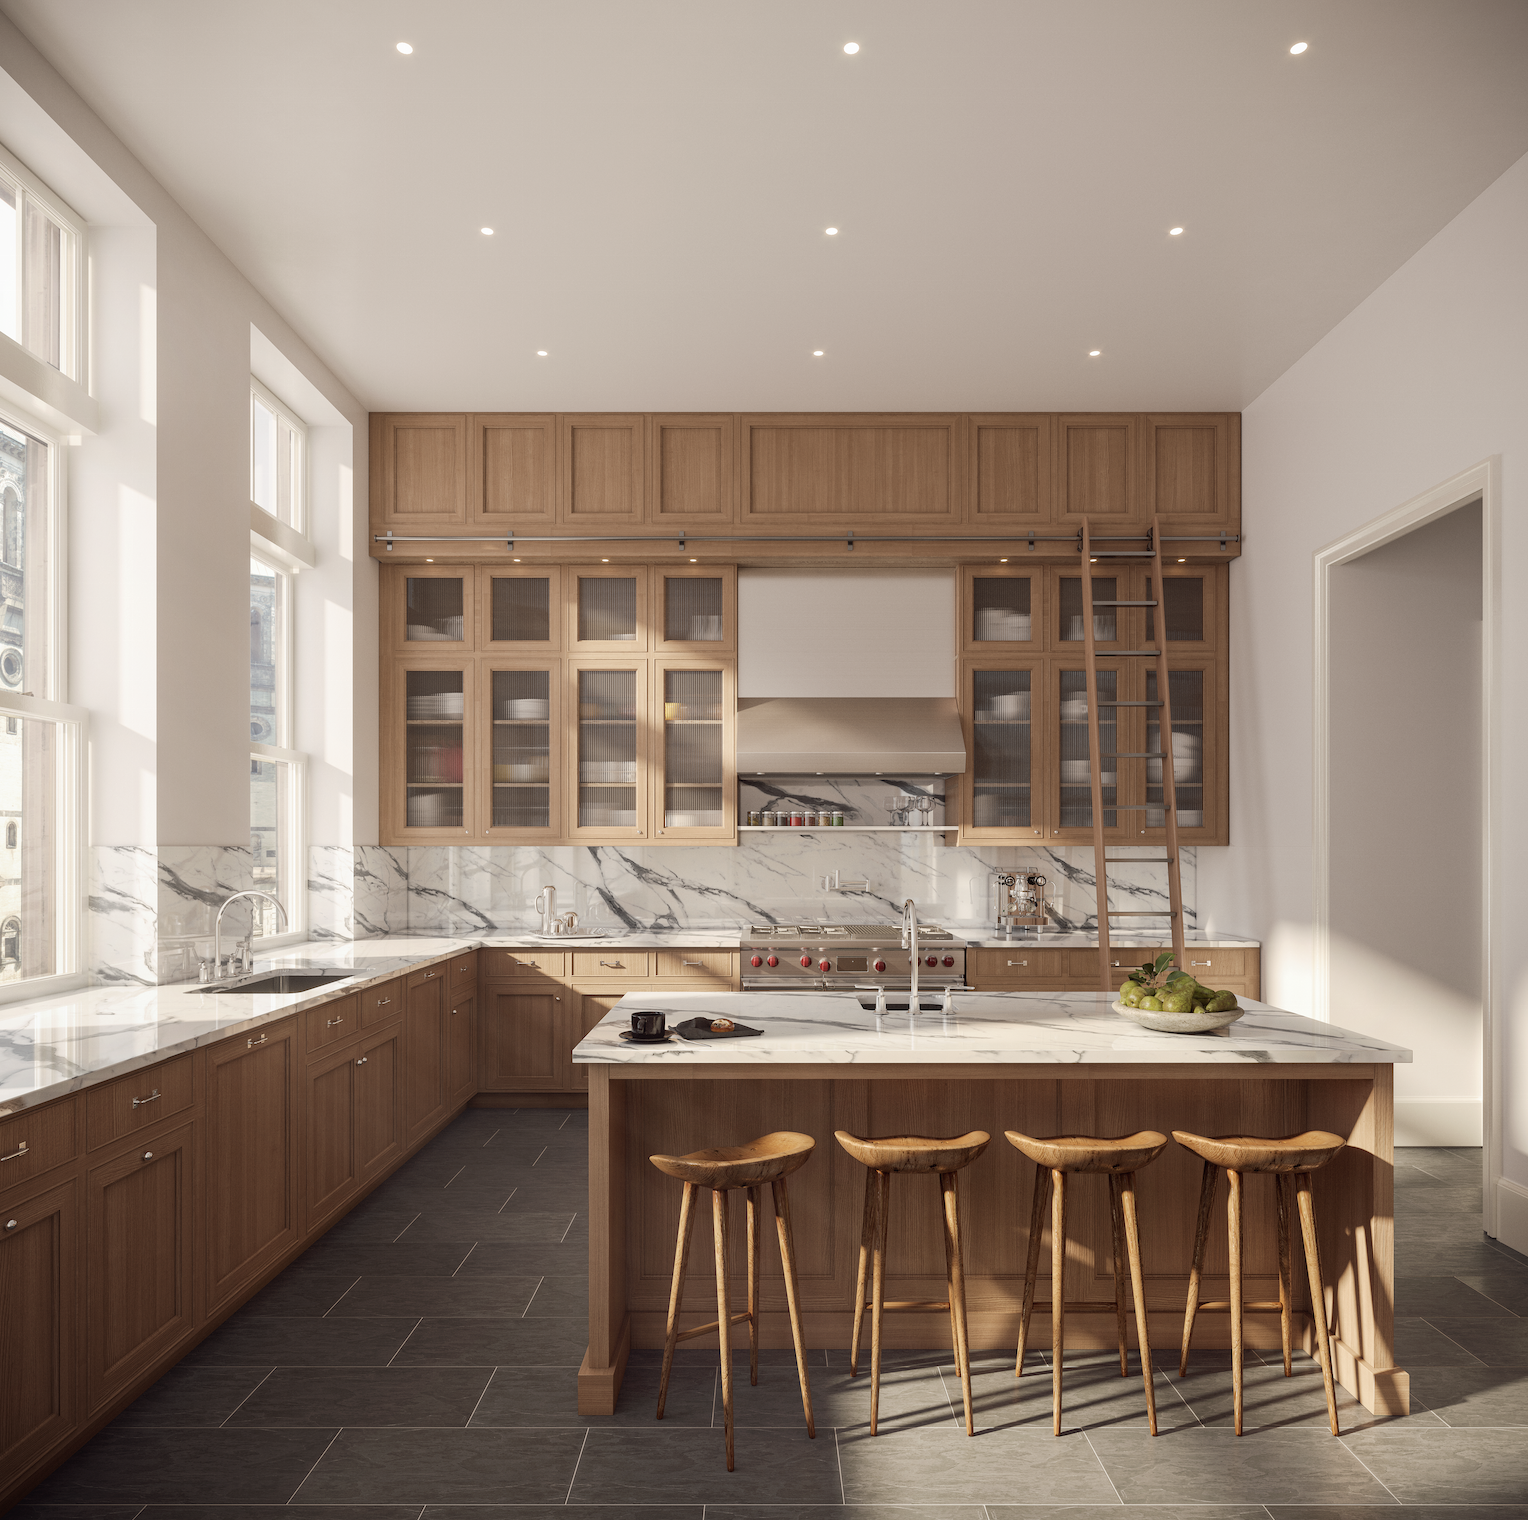 555 West End Avenue School-To-Condo Conversion Revealed On The Upper West Side